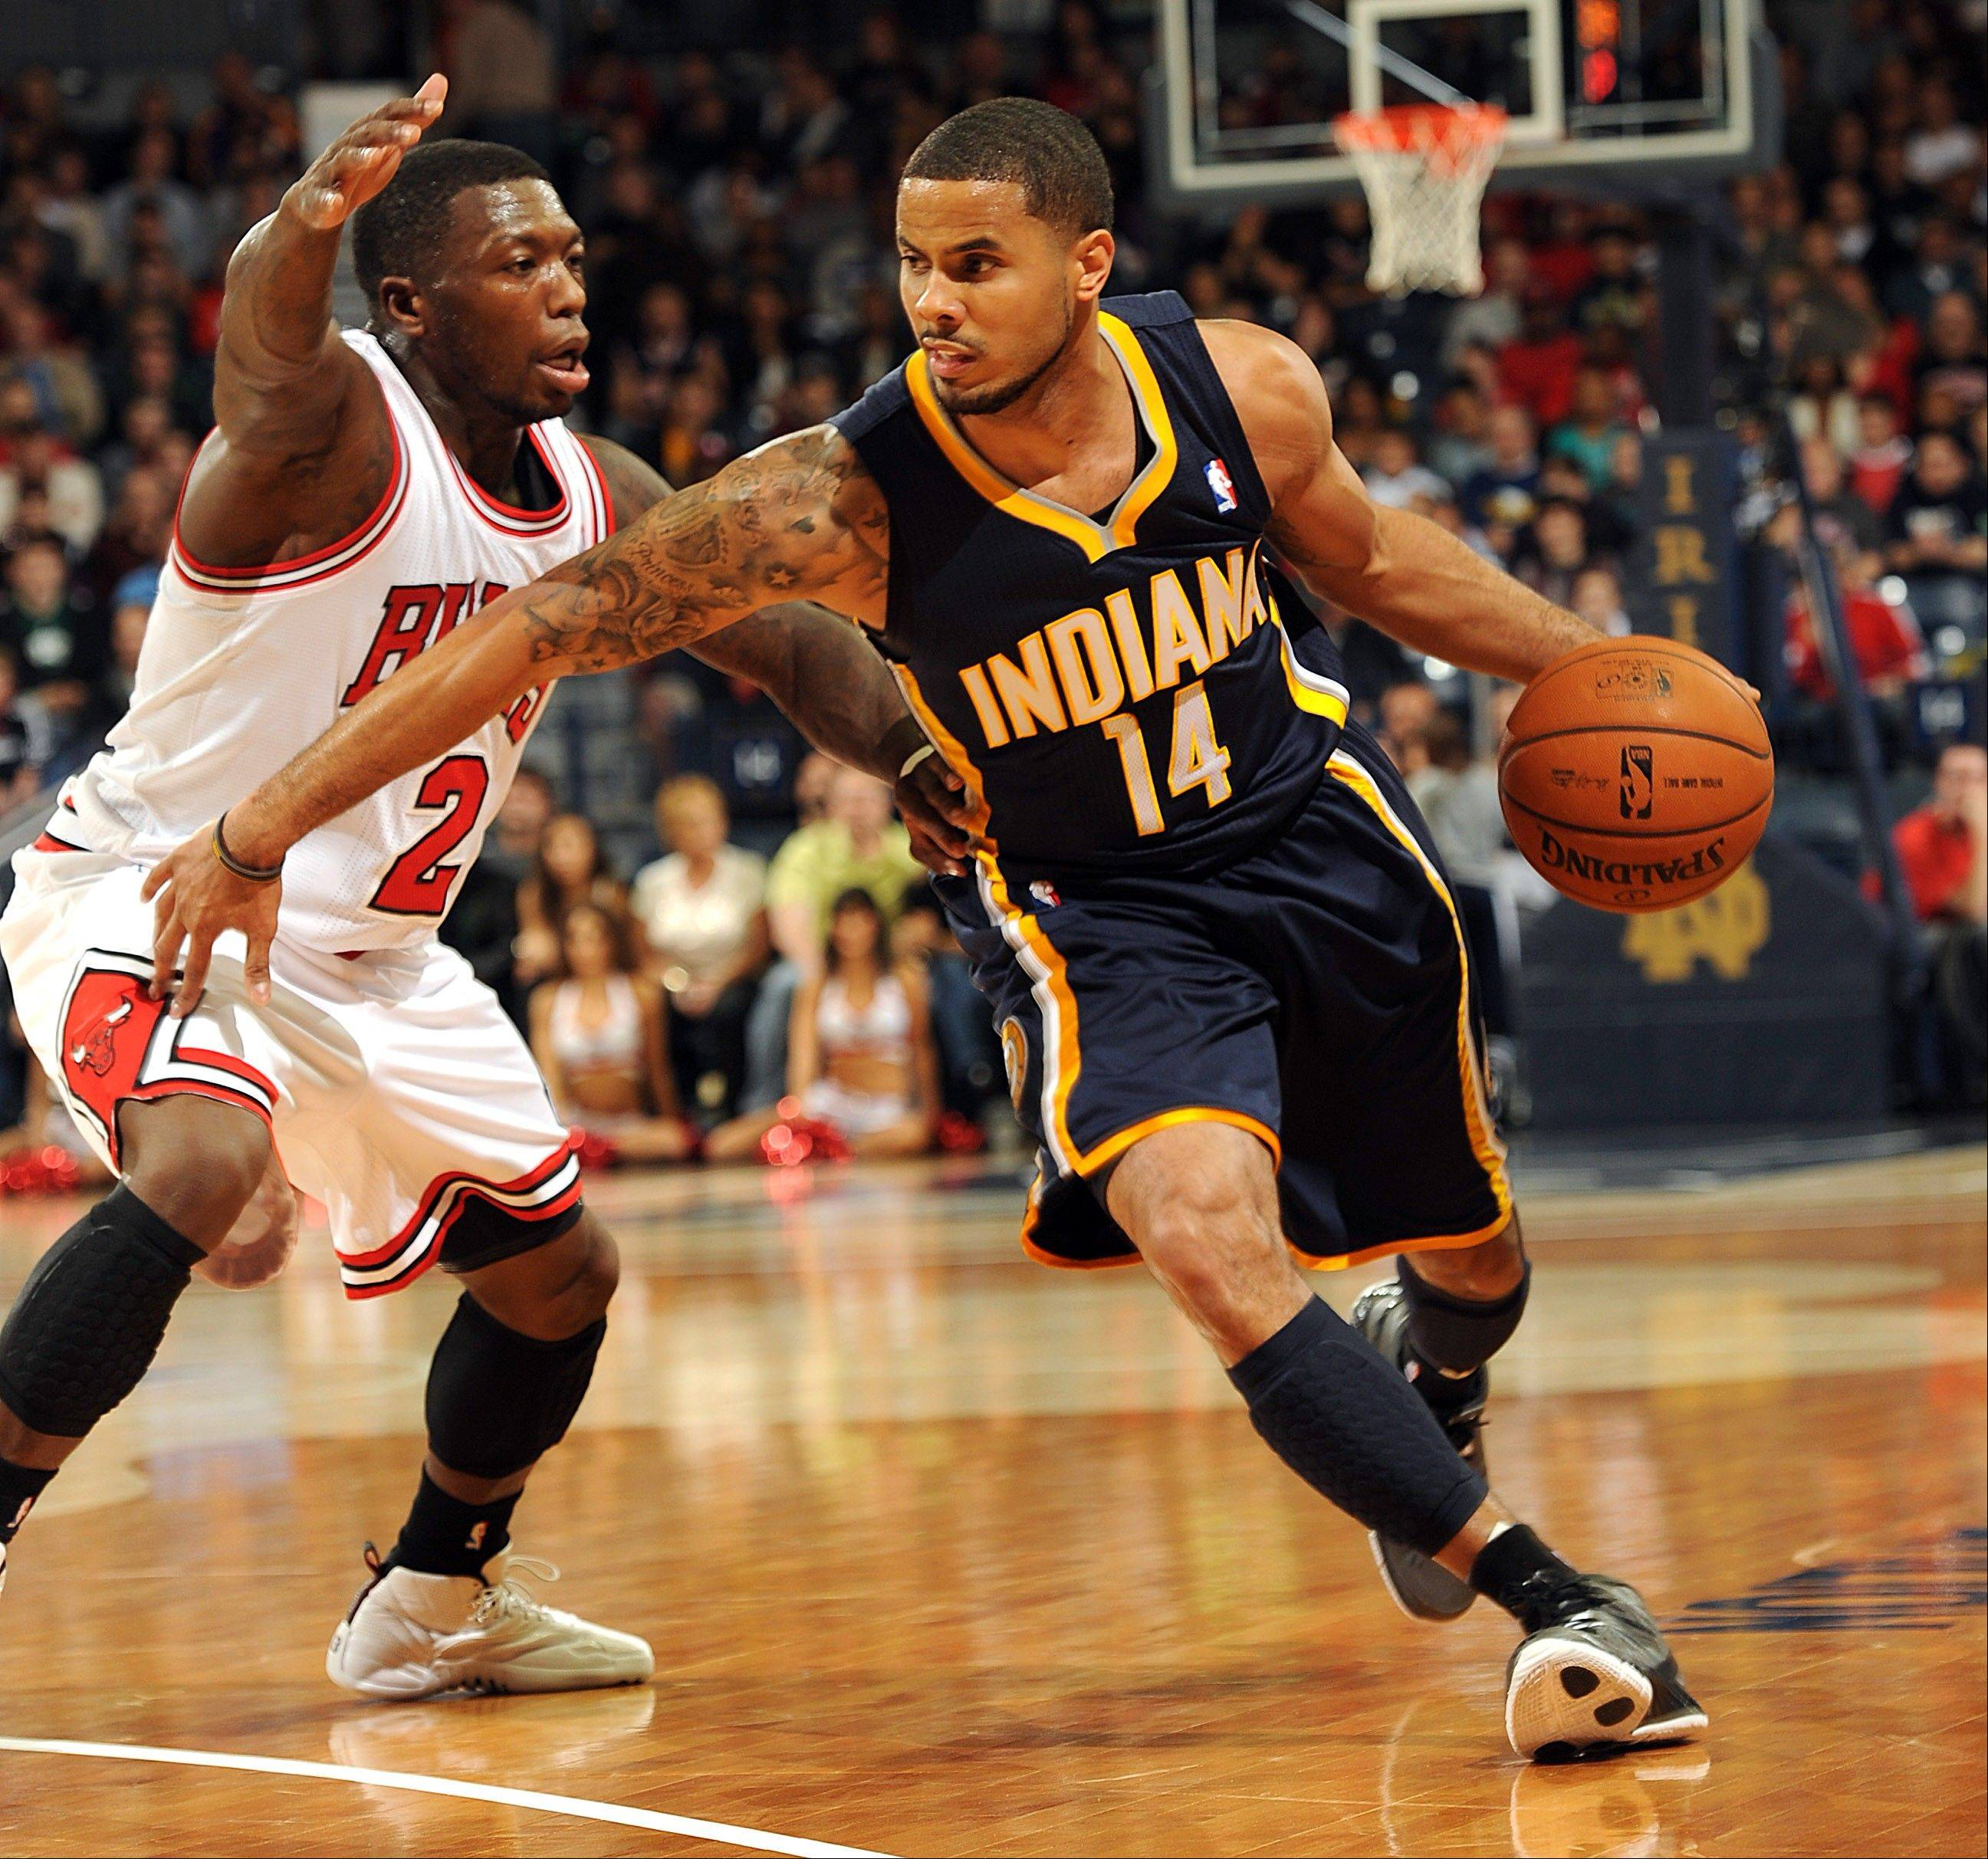 Bulls guard Nate Robinson, left, guards Indiana's D.J. Augustin during a preseason game. Robinson is excited to be playing for the Bulls, saying it's a priviledge to put on the same uniform that Michael Jordan and Scottie Pippen donned.